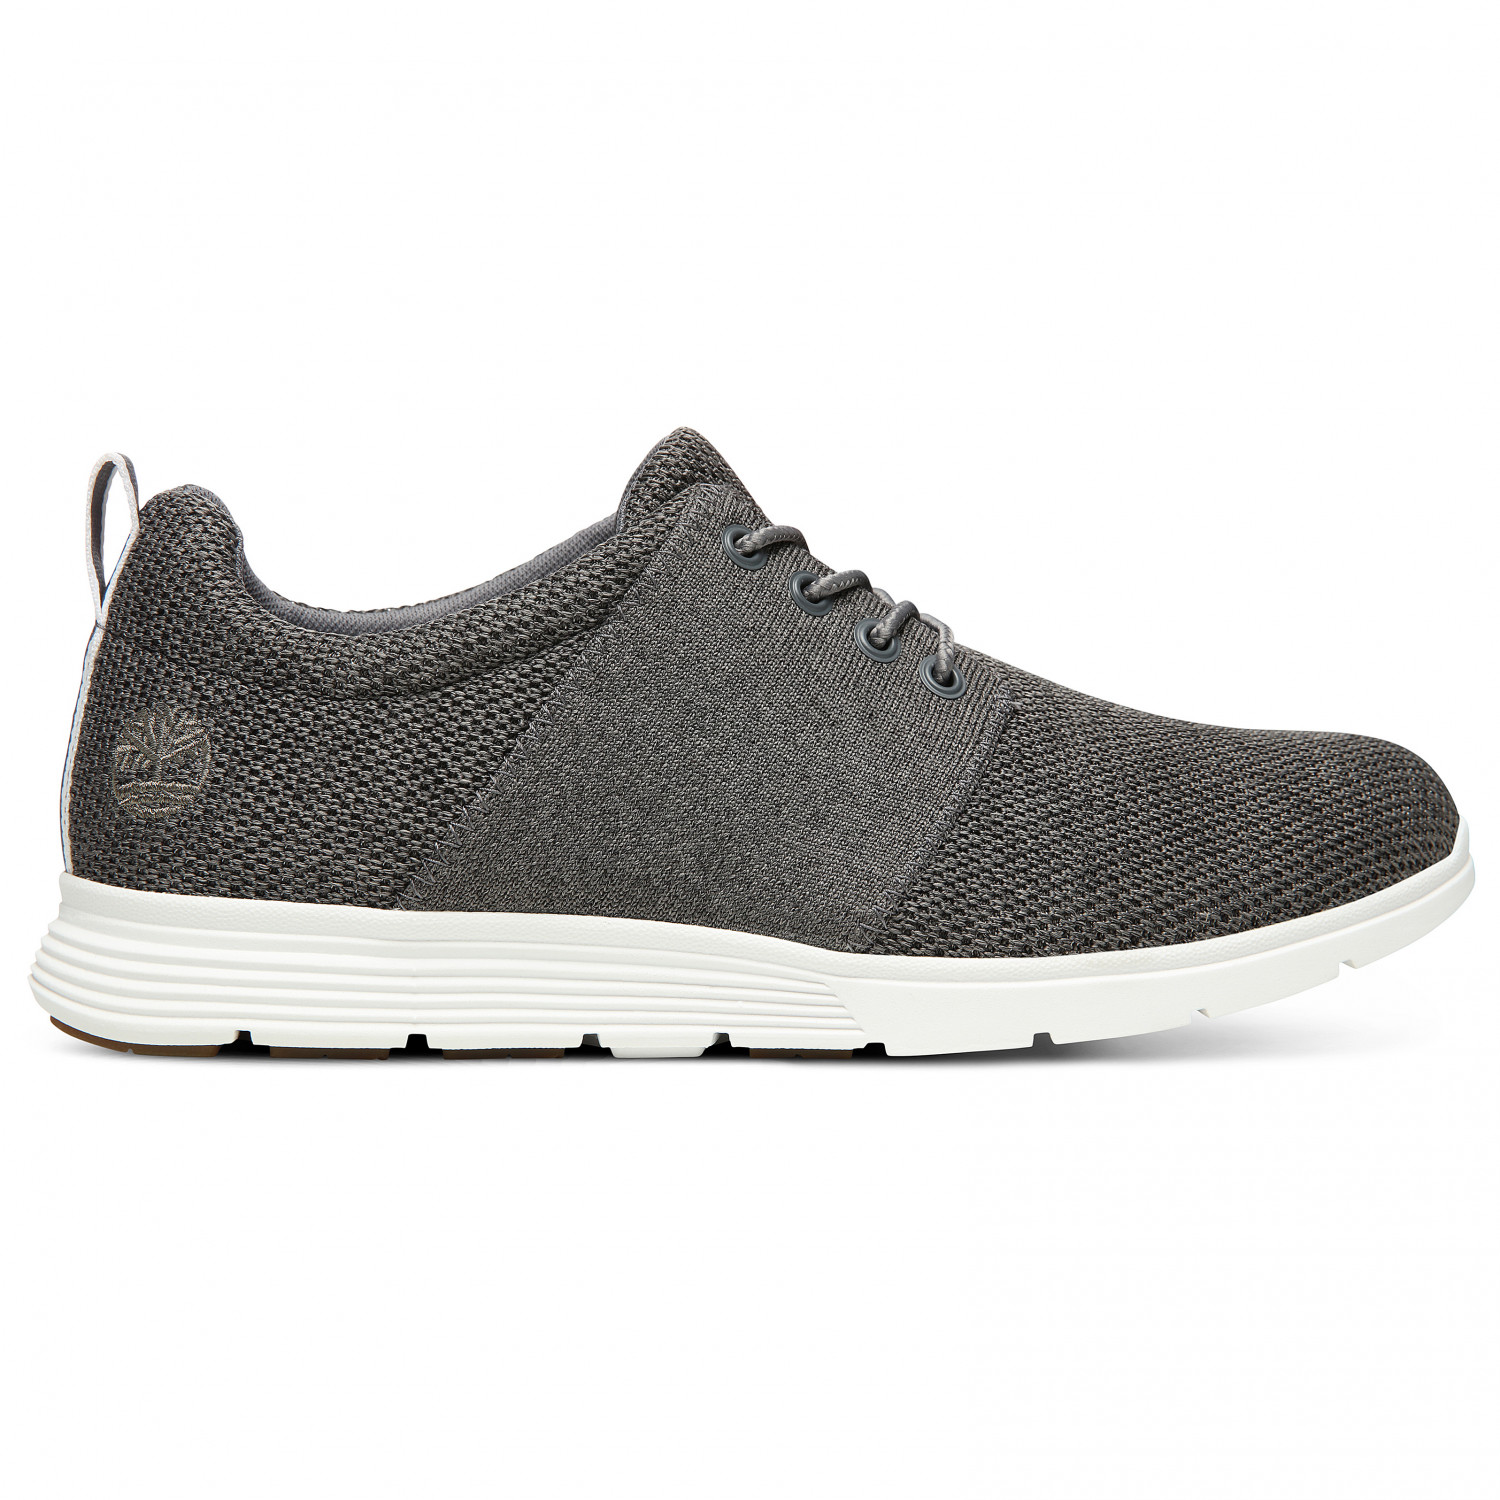 Timberland Killington Flexiknit Oxford Sneaker Castlerock | 9 (US)